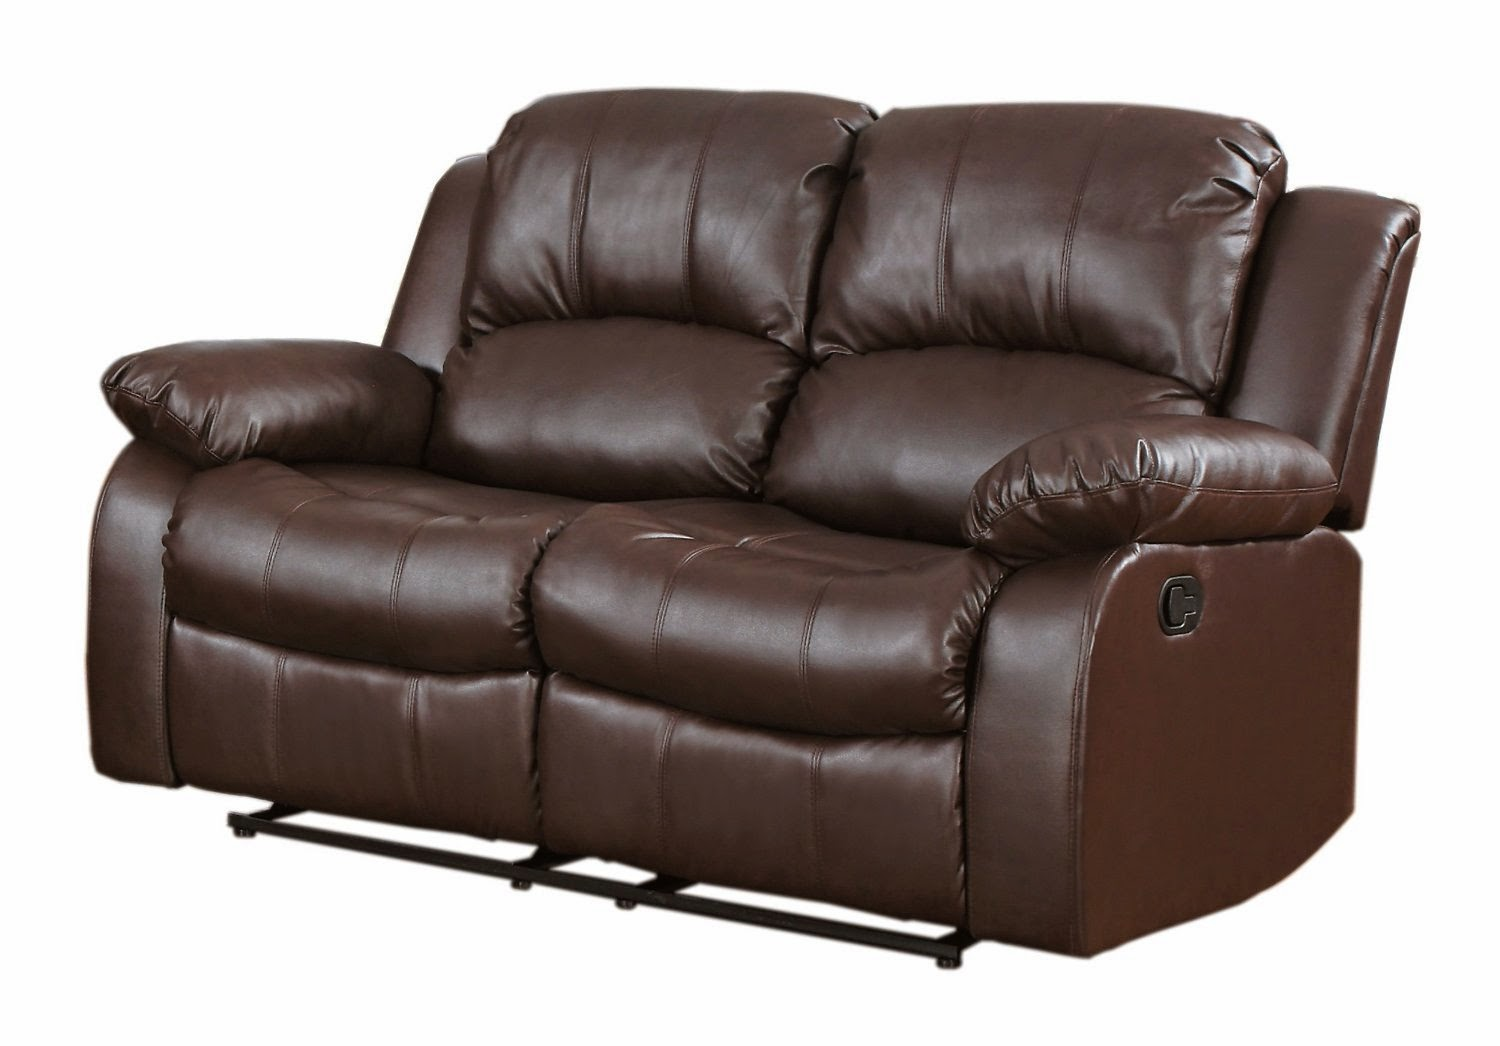 The Best Reclining Sofas Ratings Reviews Cheap Faux Leather Recliner Sofas